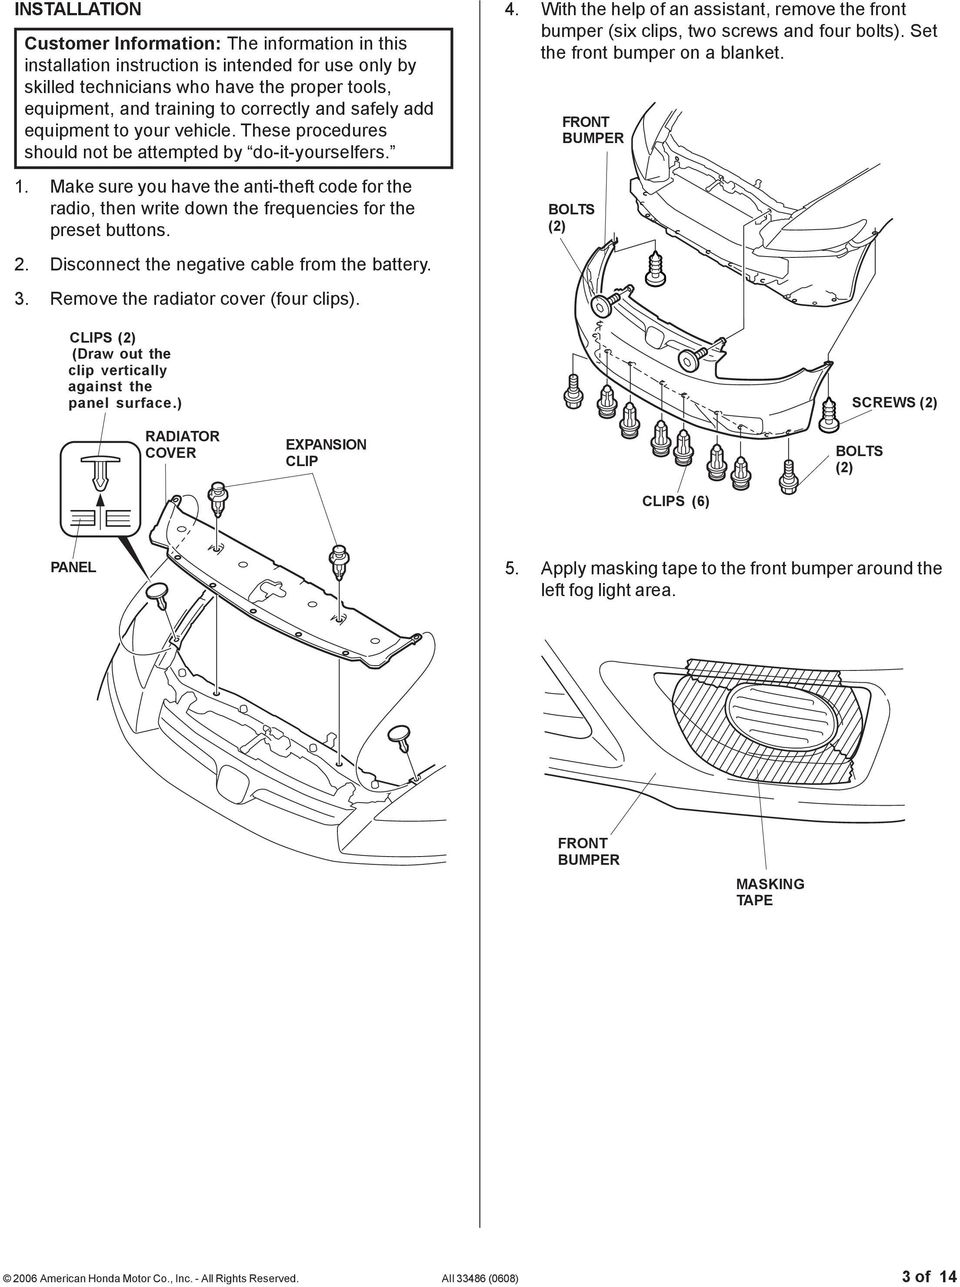 Installation Instructions Pdf Rib Harness Clip Wiring Make Sure You Have The Anti Theft Code For Radio Then Write Down